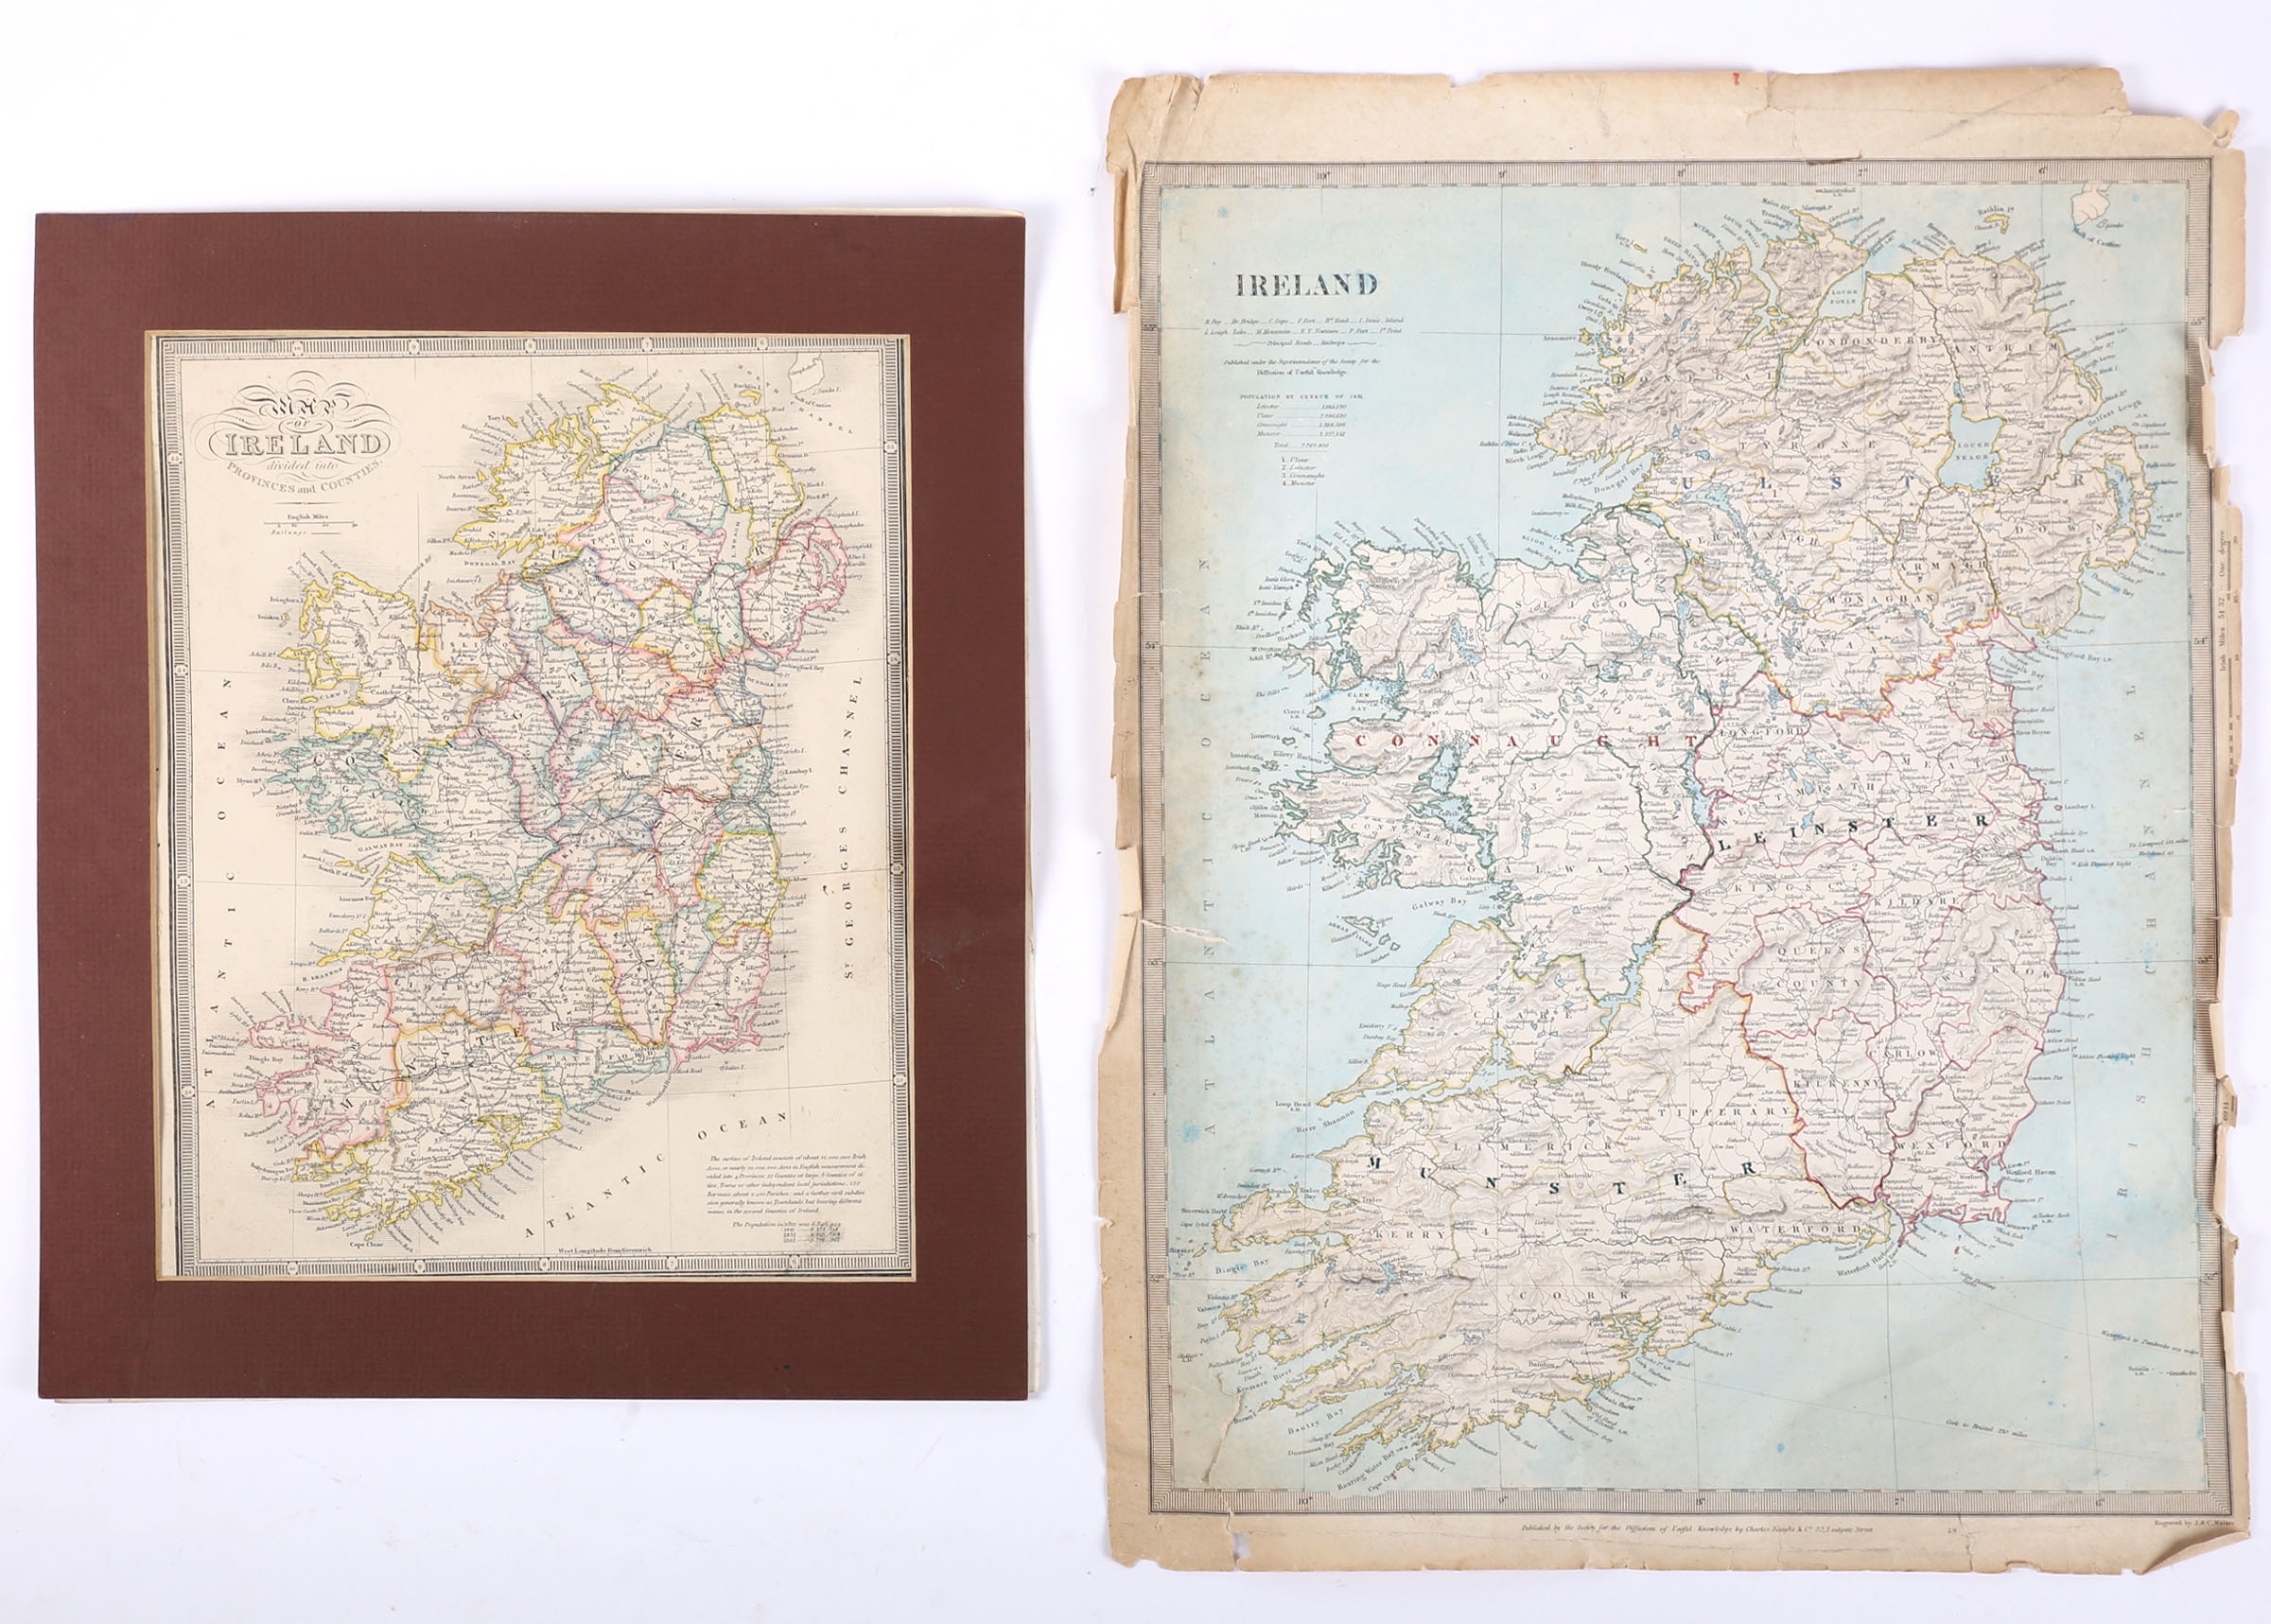 Maps of Ireland. 1844 Map of Ireland showing the Round Towers of Ireland, a hand-coloured engraved - Image 2 of 2